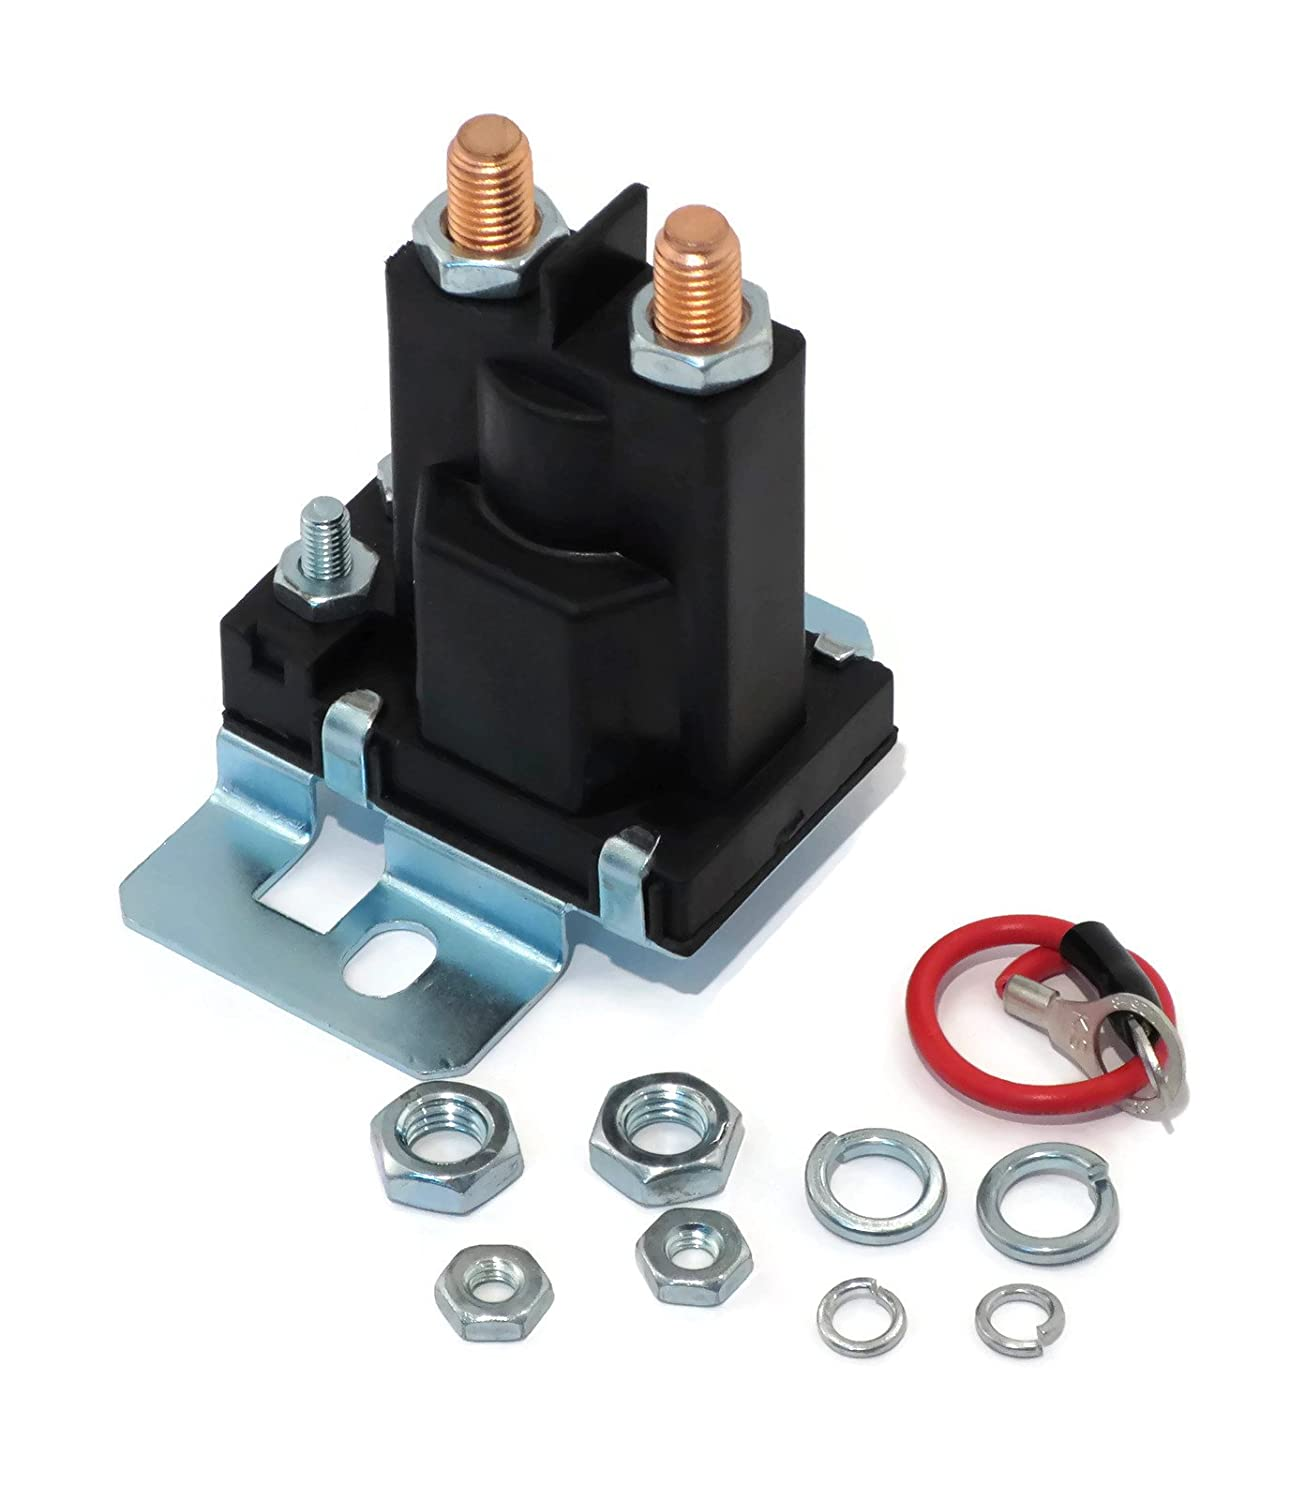 New Relay Solenoid for Western Fisher Meyers Snowplows 4 Post w/ Hardware Buyers